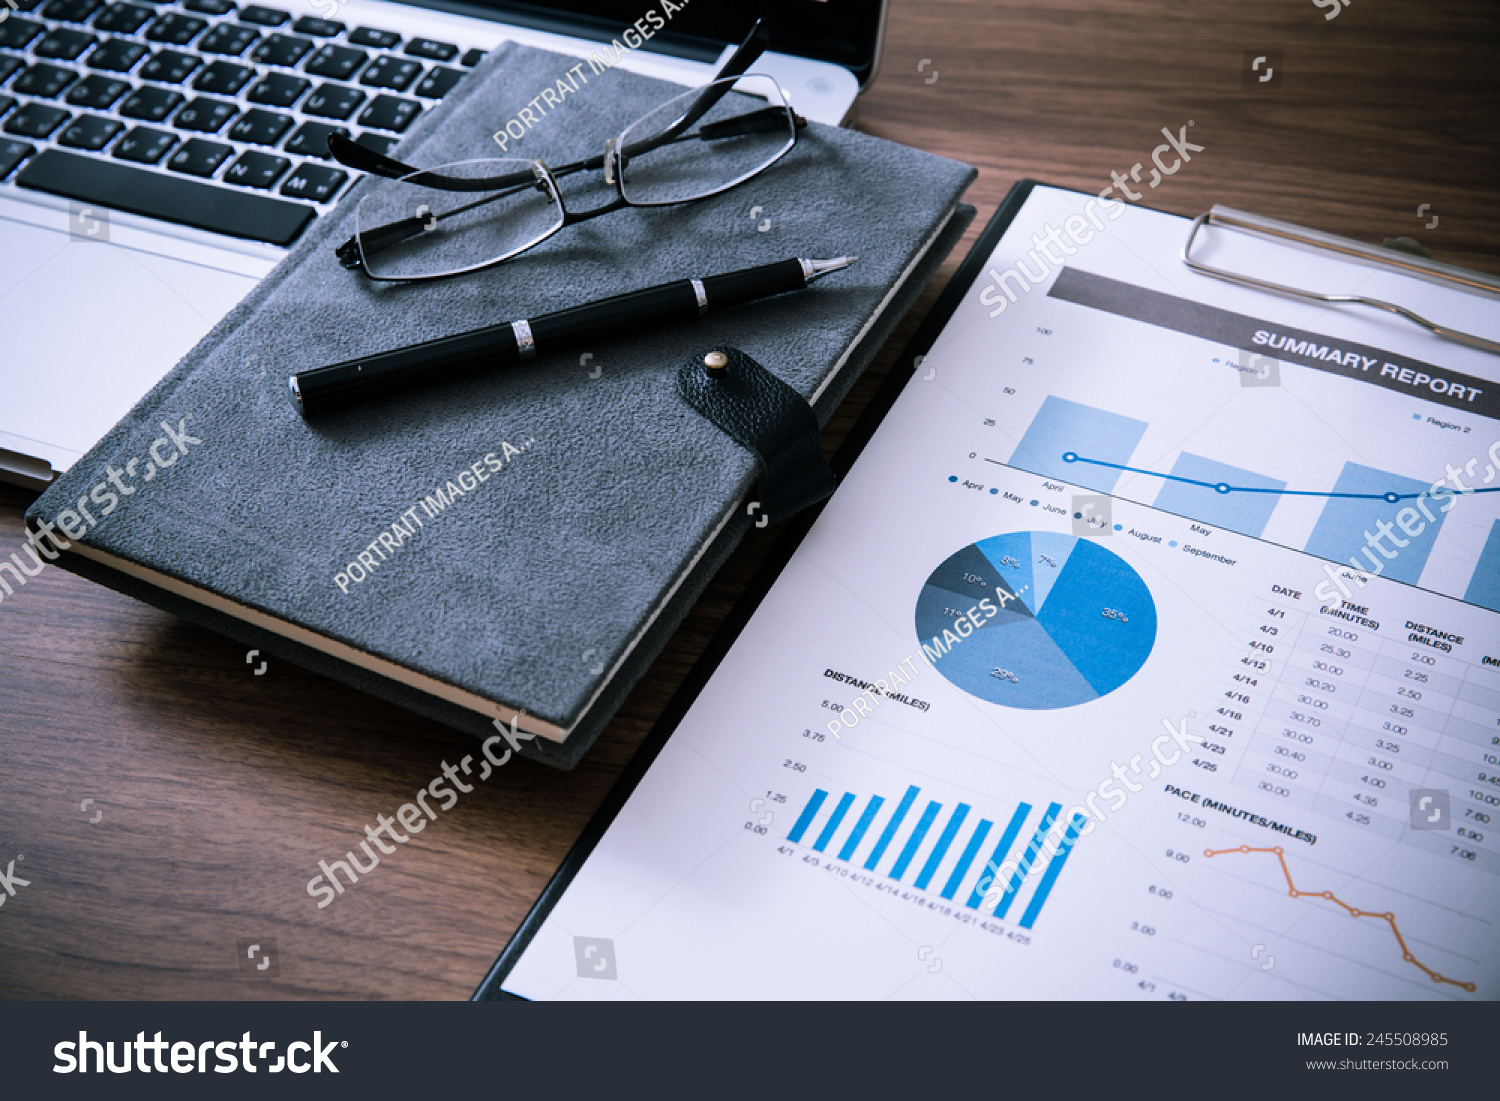 A report on accounting and finance